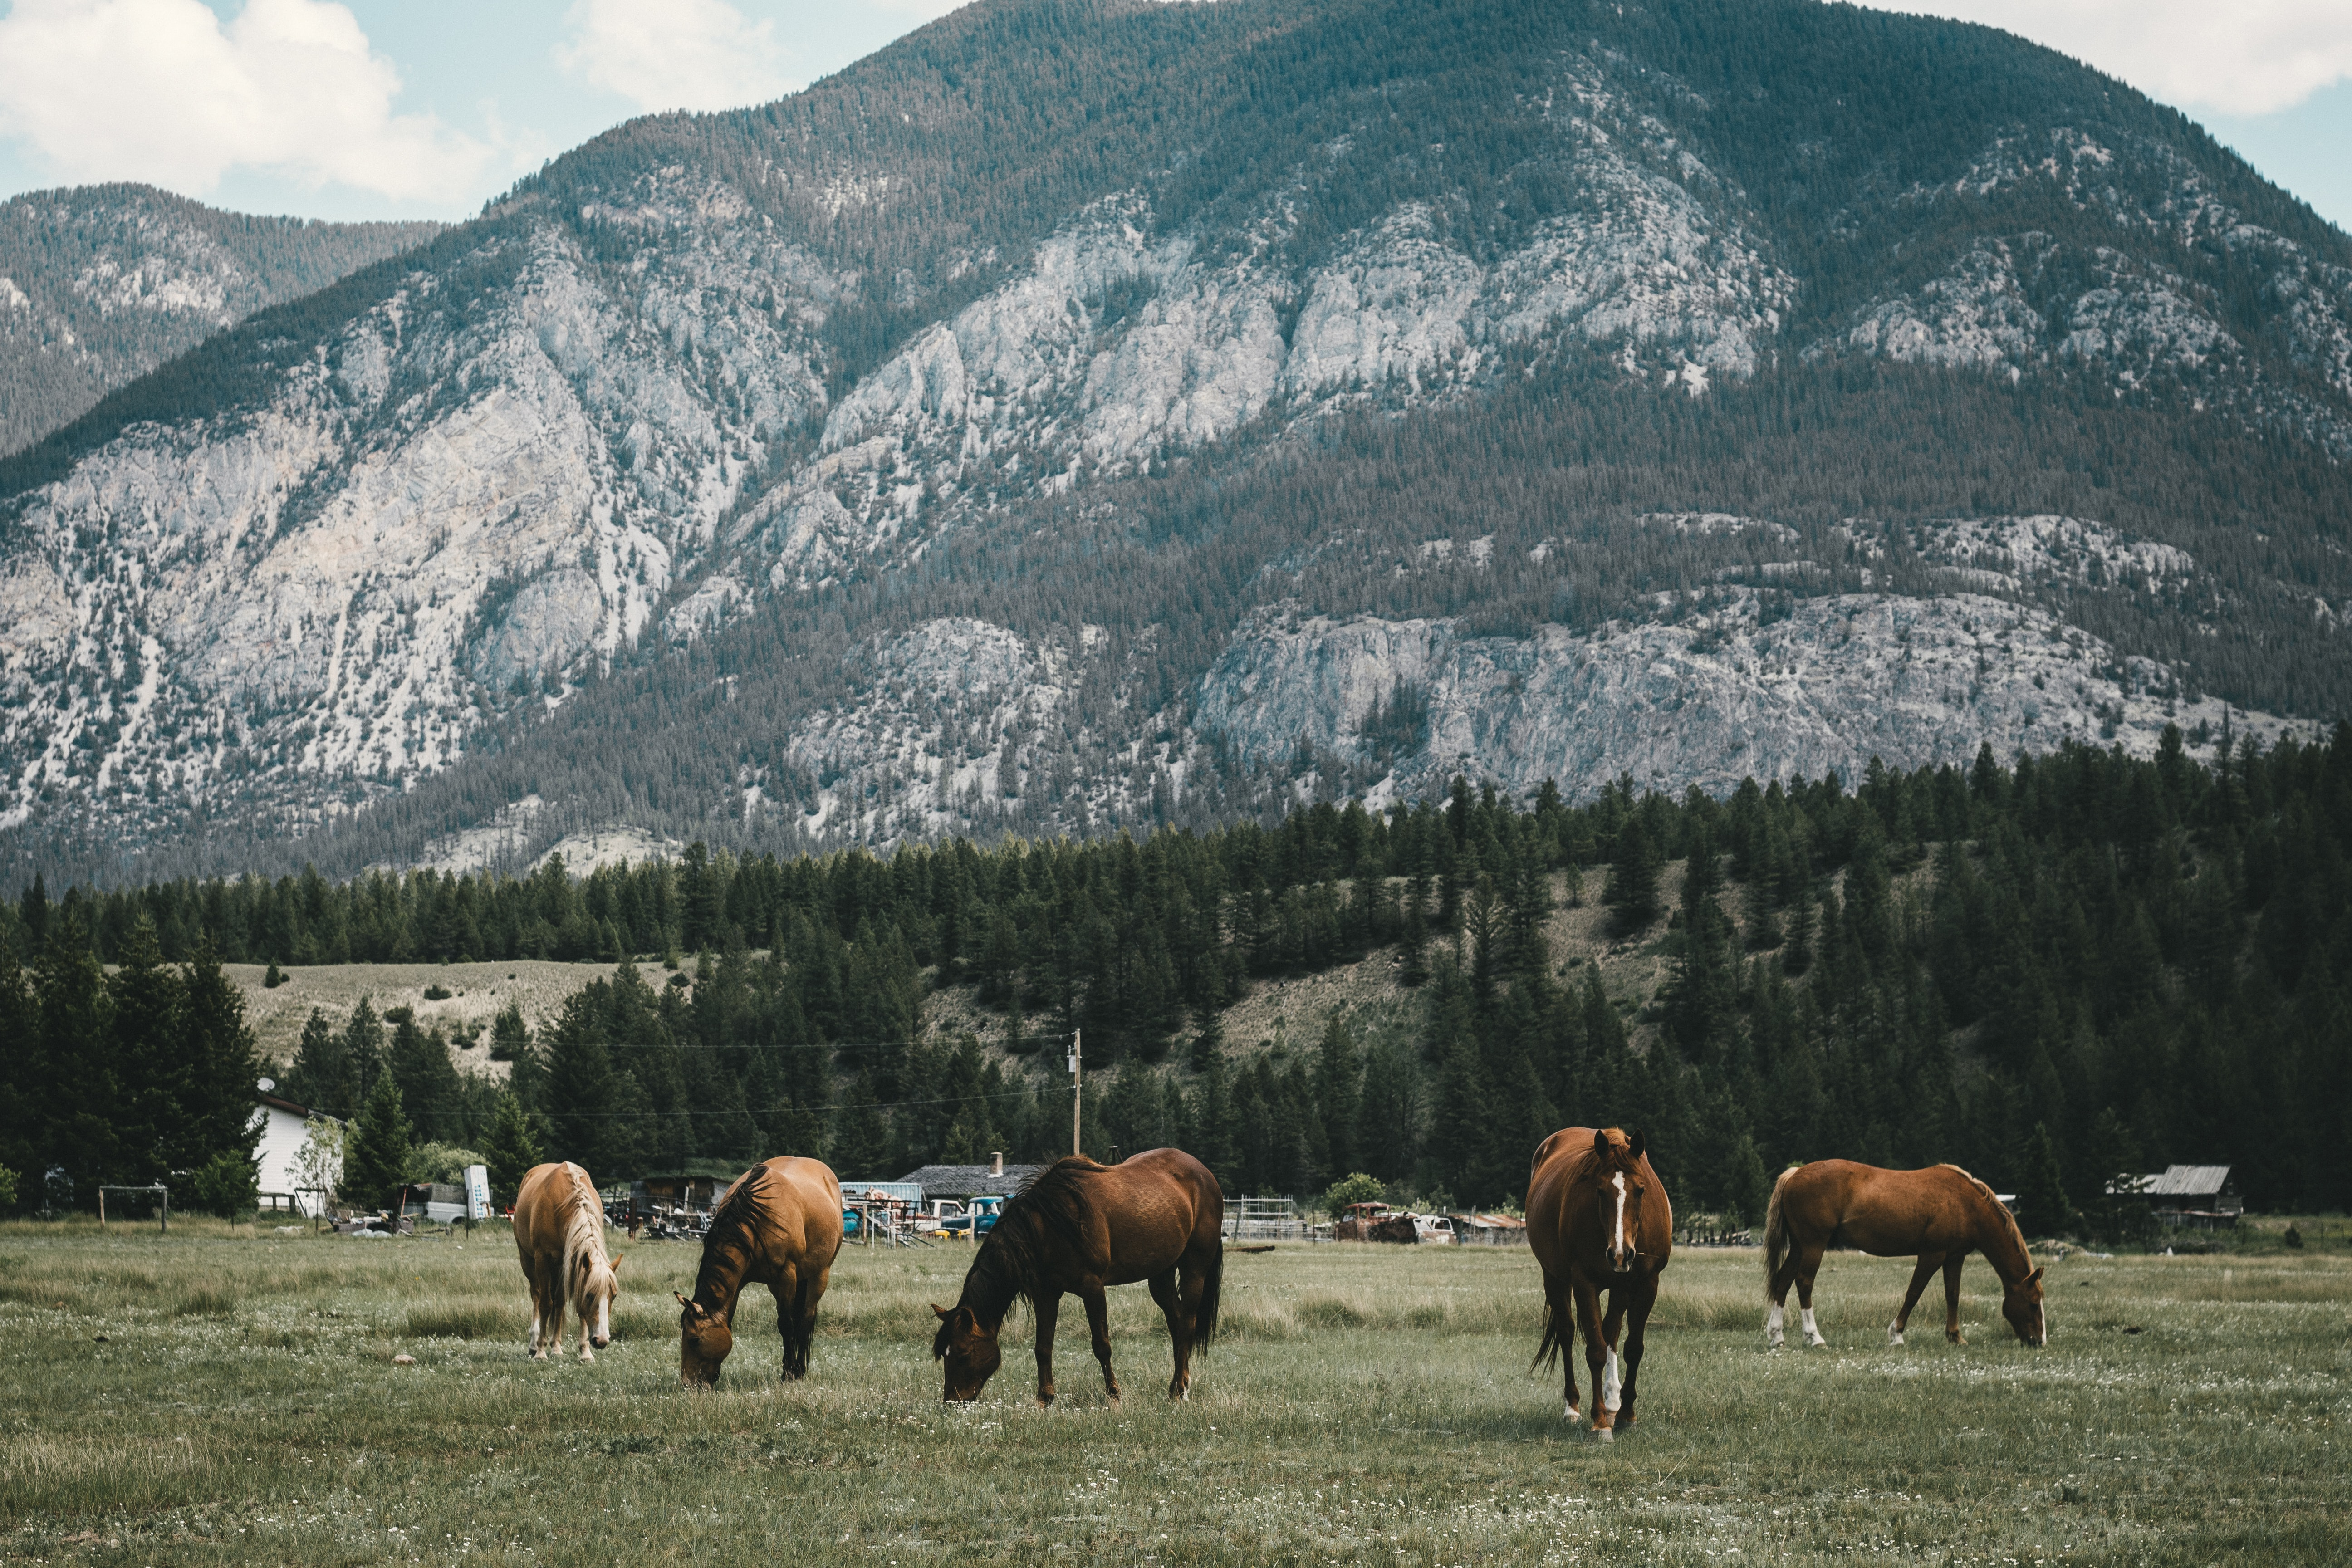 several horses eating grass on field